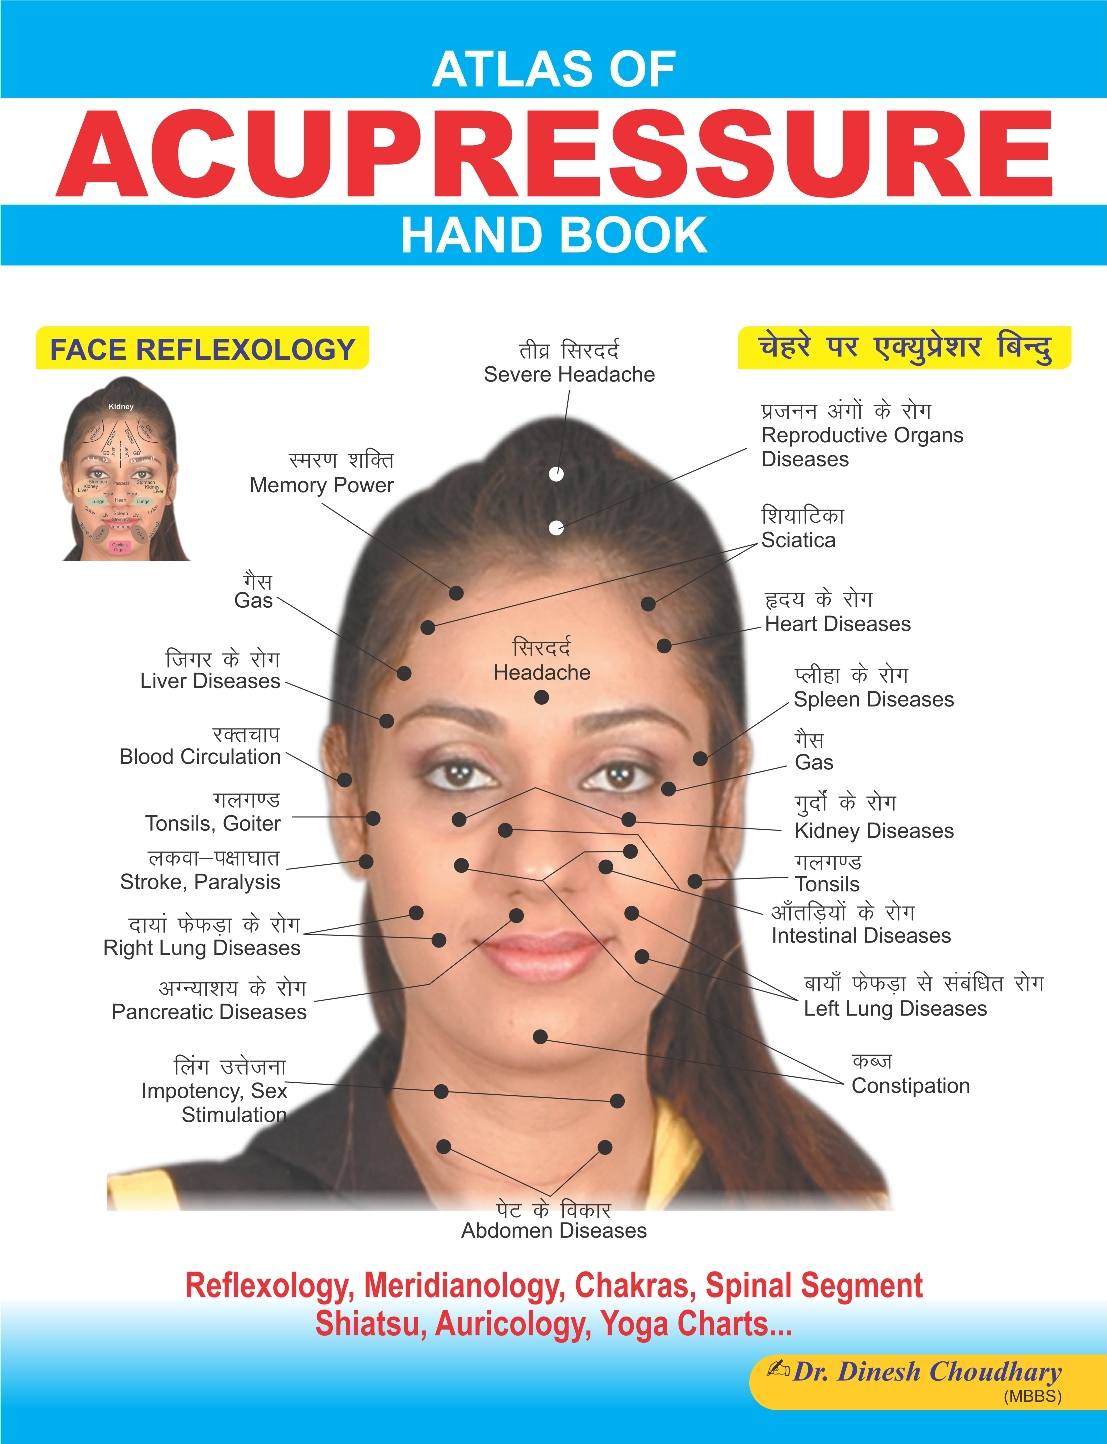 Atlas of Acupressure - Hand Book  - 326